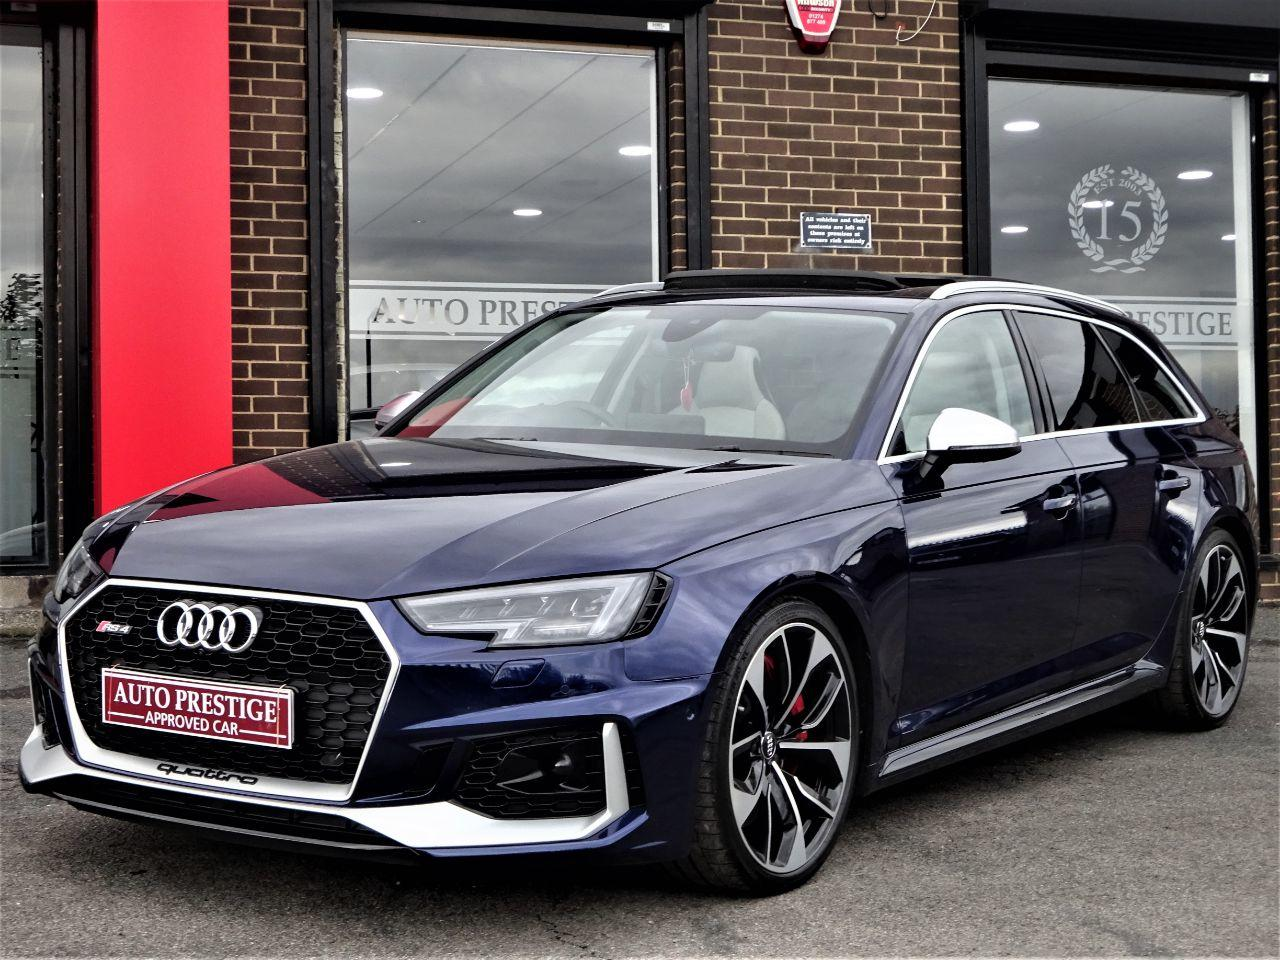 Audi RS4 2.9 TFSI Quattro HUGH SPECIFICATION PAN ROOF BANG OLUFSEN BUCKETS 360 CAMERAS ADAPTIVE CRUISE Estate Petrol Blue at Autoprestige Bradford